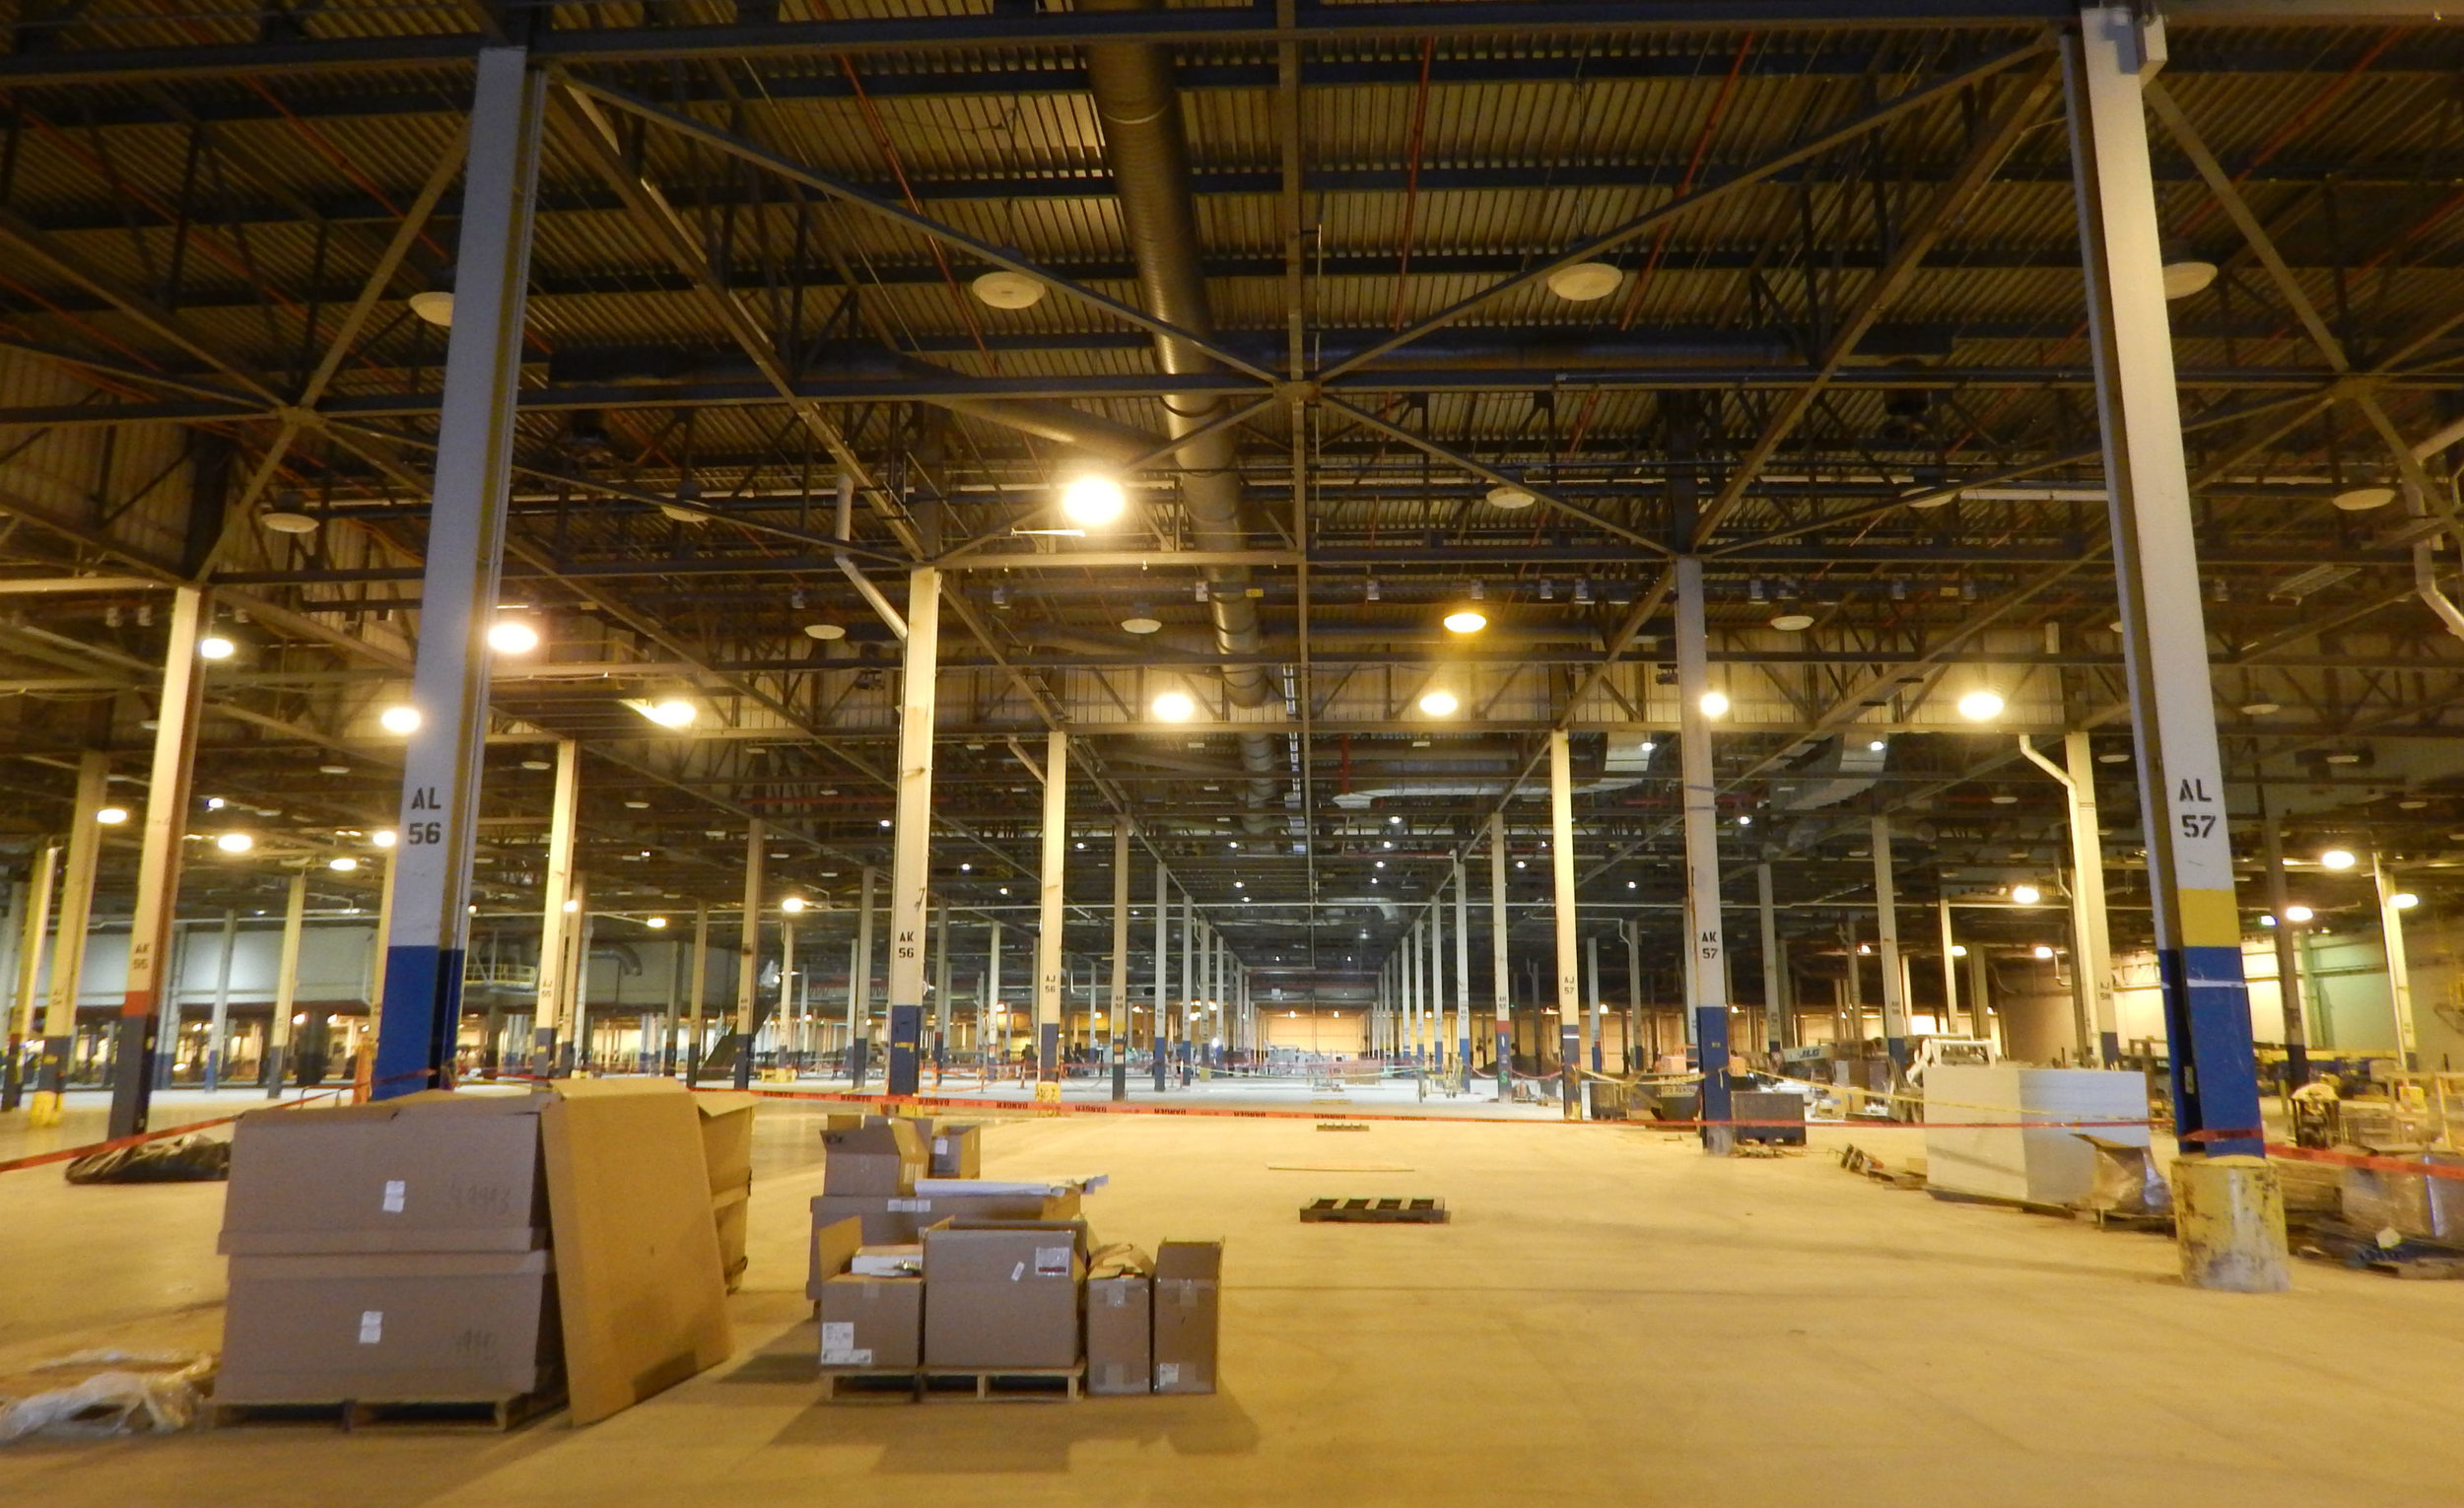 All Types of Commercial Buildings, Warehouses -